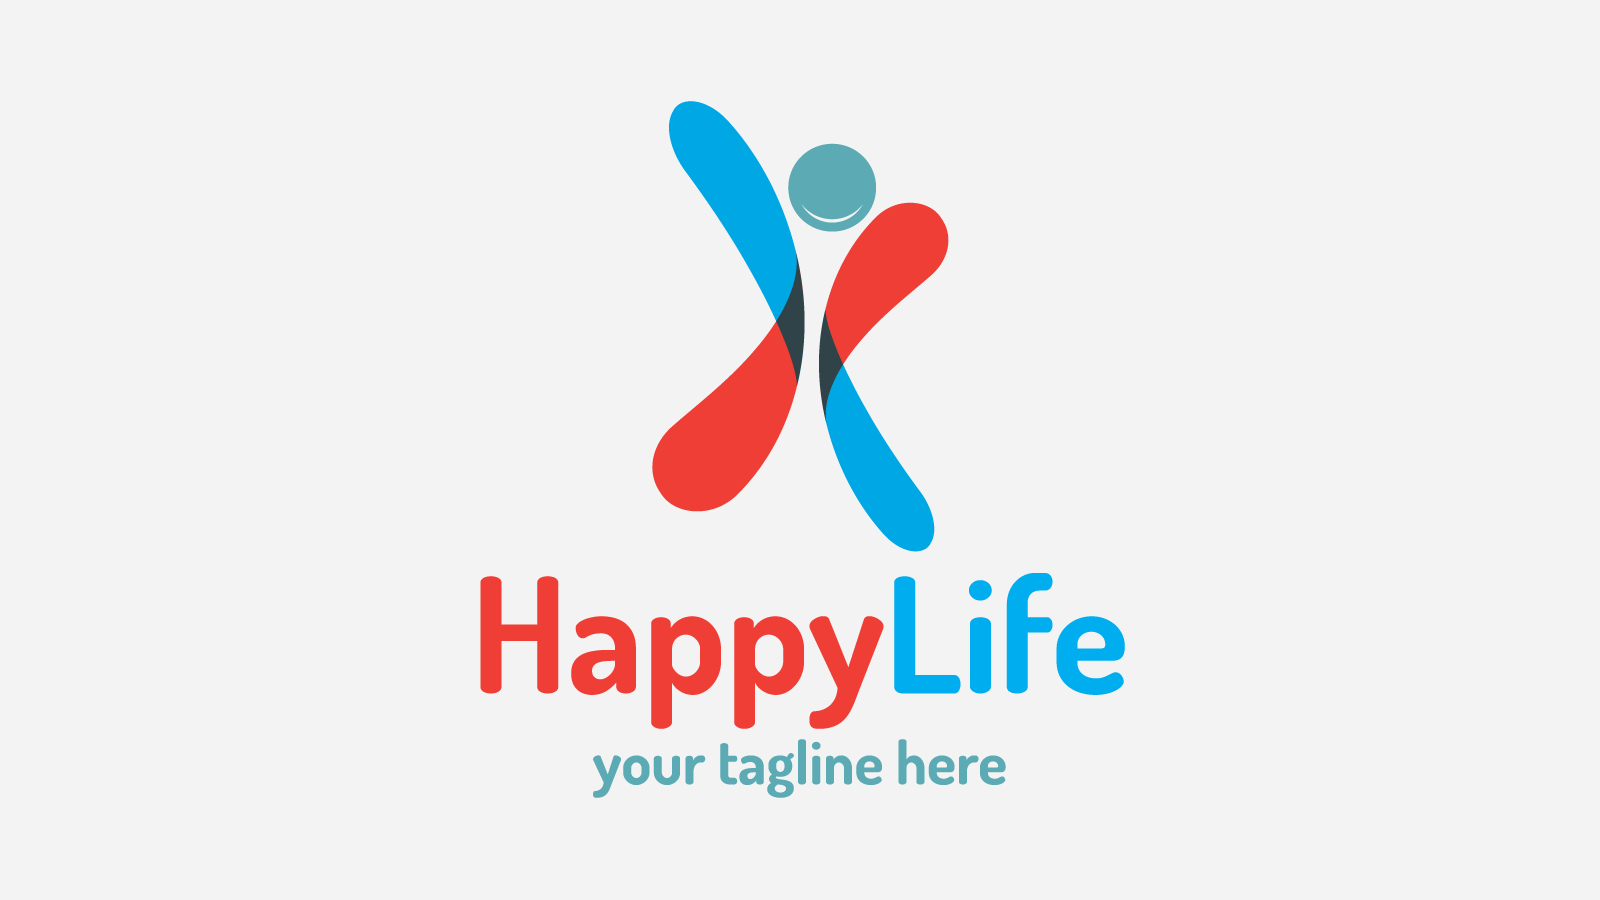 Happylife Free Logo Design Zfreegraphic Free Vector Logo Downloads